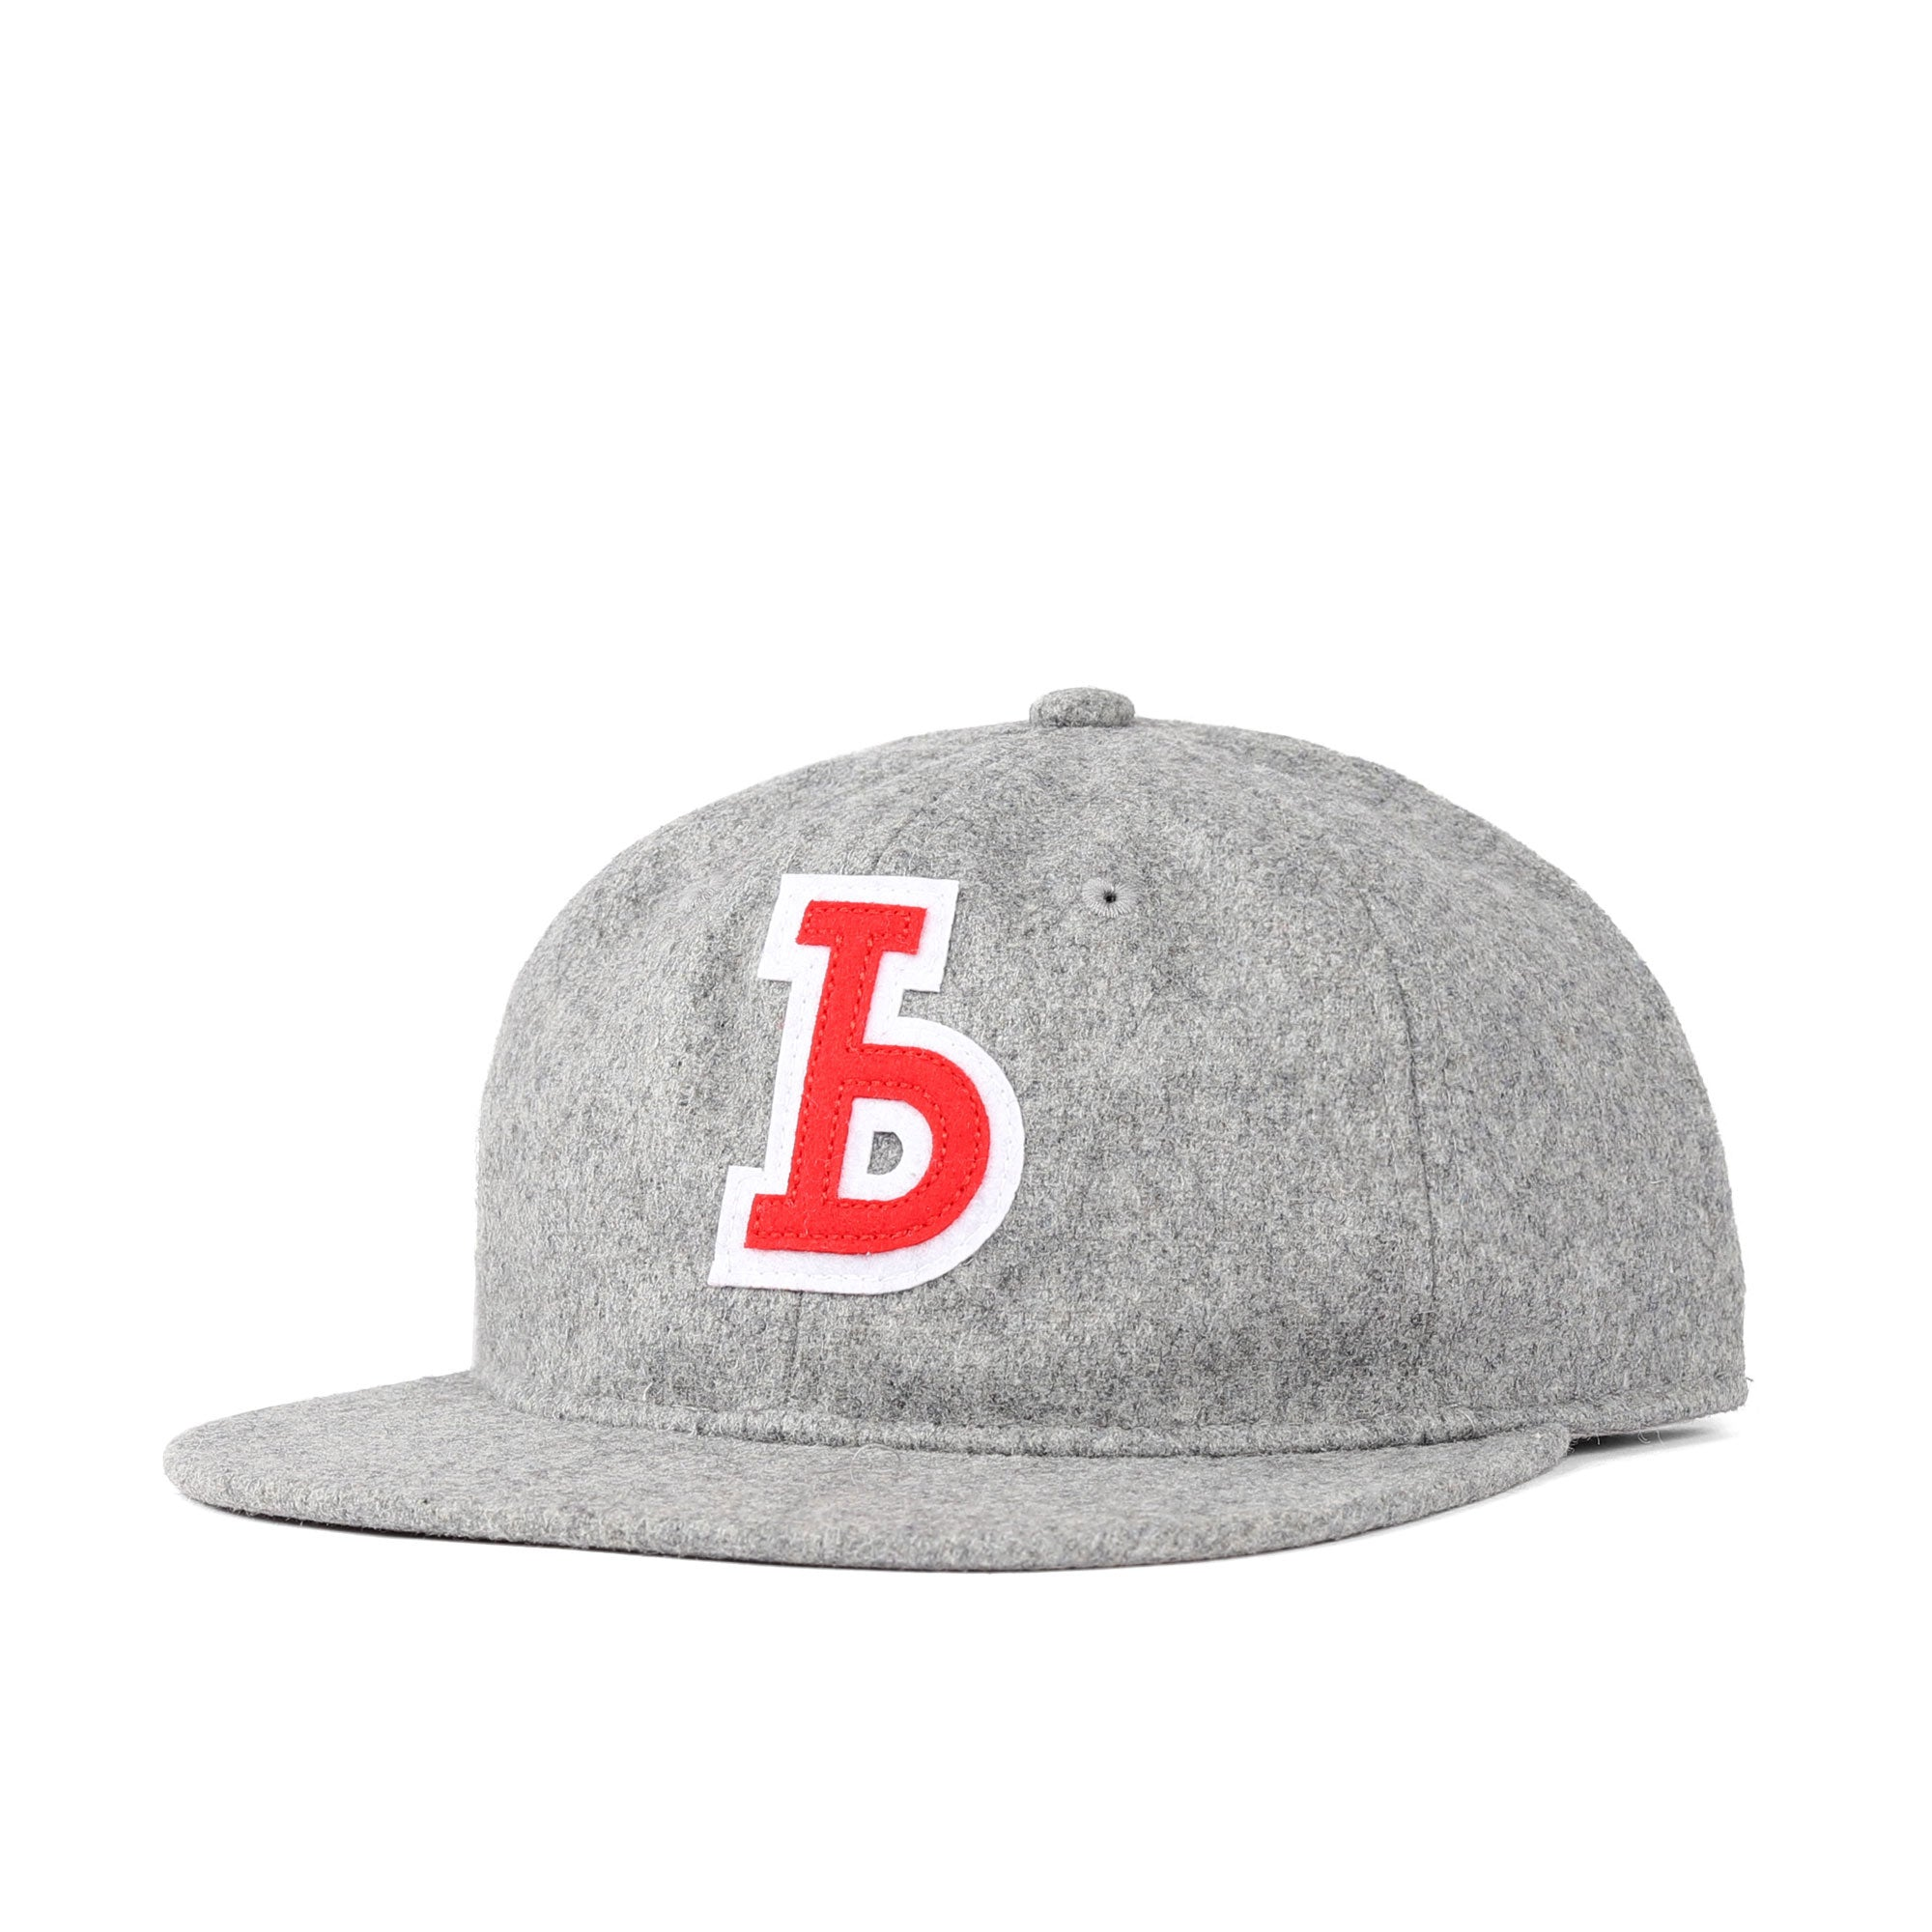 Beyond B Team Cap Product Photo #1